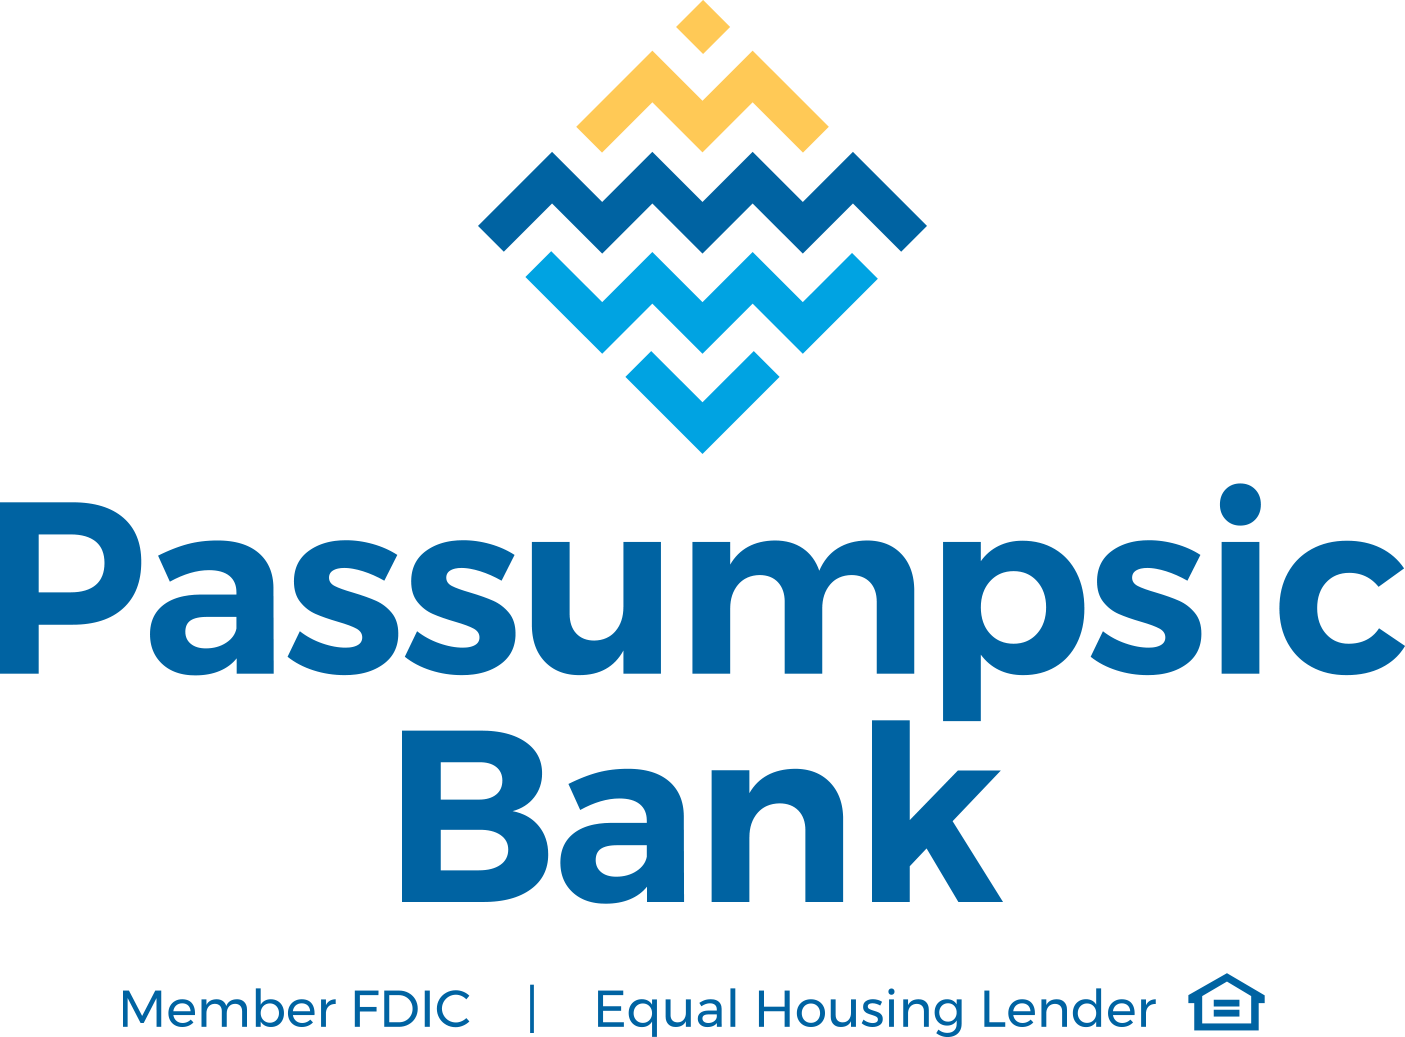 passumpsicbank_3color_logo_centered_FDIC_EHL_cmyk_u.png